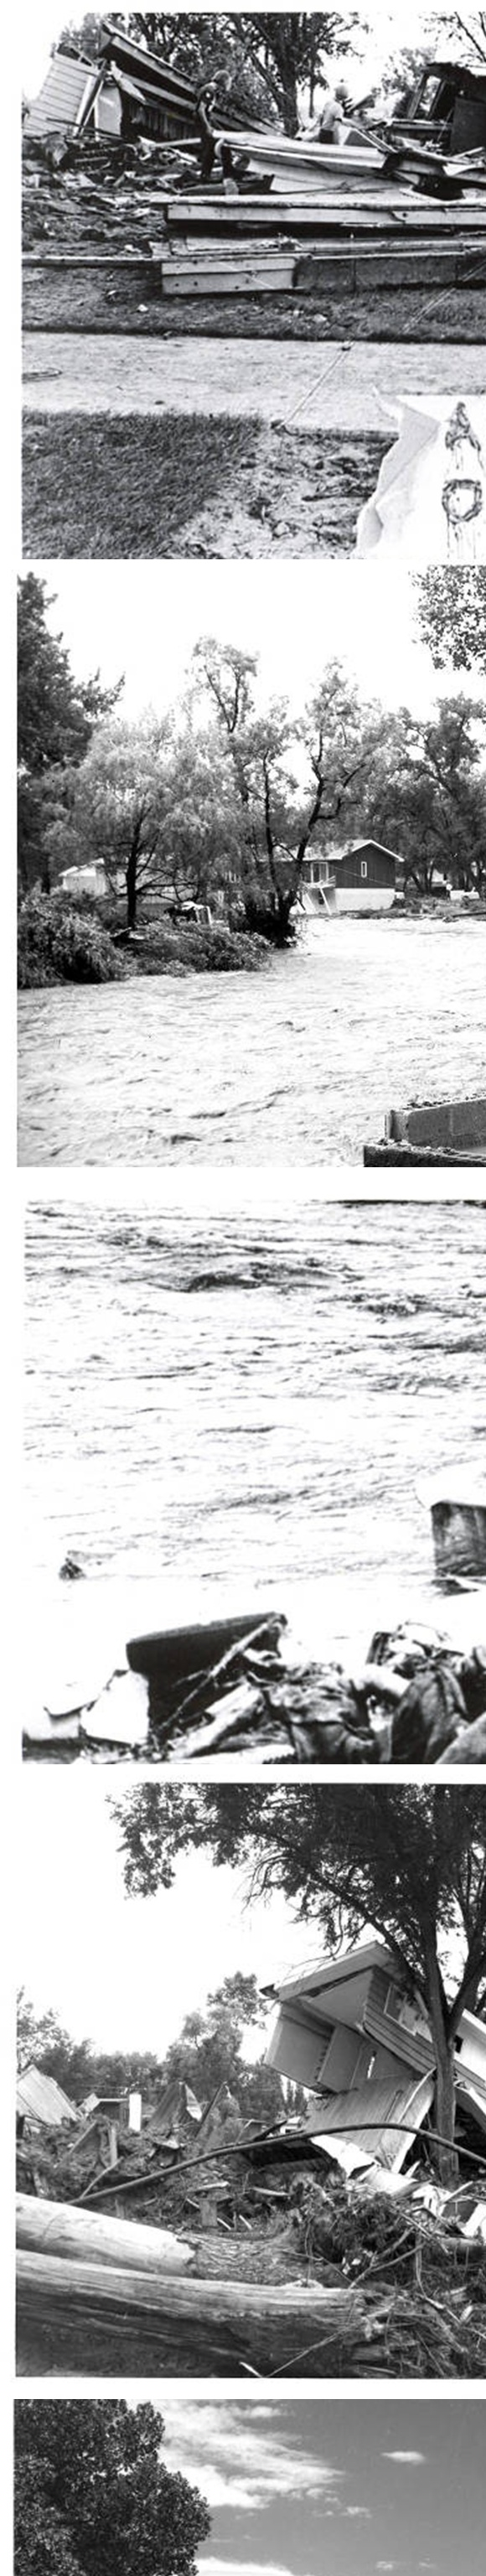 The Black Hills Flood of 1972 Image Montage. In a 6-hour time frame on June 9, 1972, a rush of water poured through Rapid City and canyons in the surrounding area, destroying homes, vehicles, businesses, bridges, and claiming 238 lives. Rapid Creek overtopped its banks at 10:15 p.m..  A short time later, Mayor Don Barnett urged the evacuation of all low-lying residential areas.  Canyon Lake Dam failed at 10:45 p.m., adding to the flood waters.